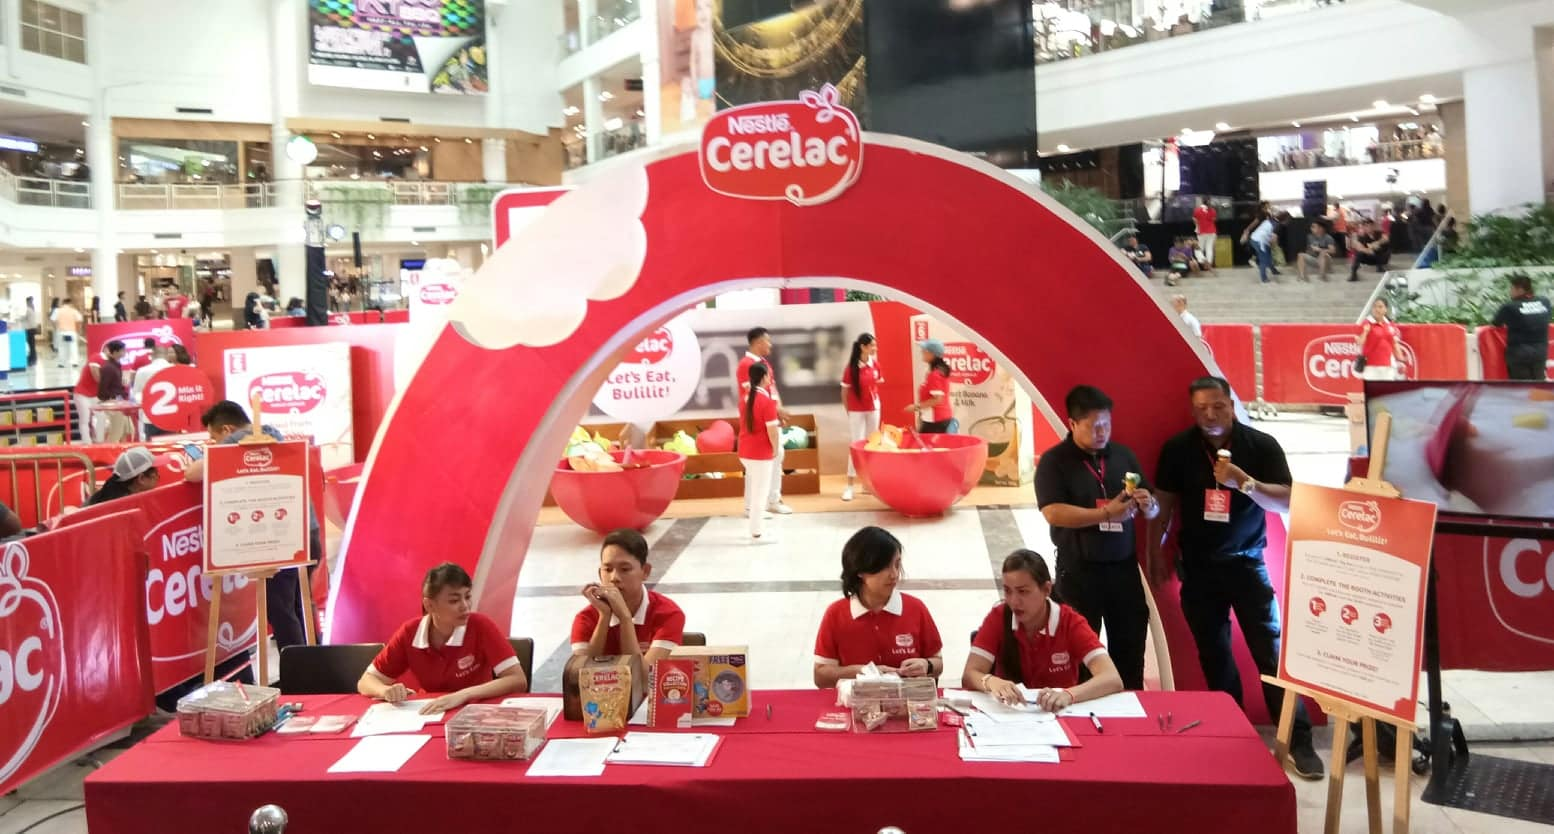 Adae to remember cerelac invites parents to discover a whole new cerelac invites parents to discover a whole new world of taste and textures with their little ones at the cerelac lets eat bulilit stopboris Gallery